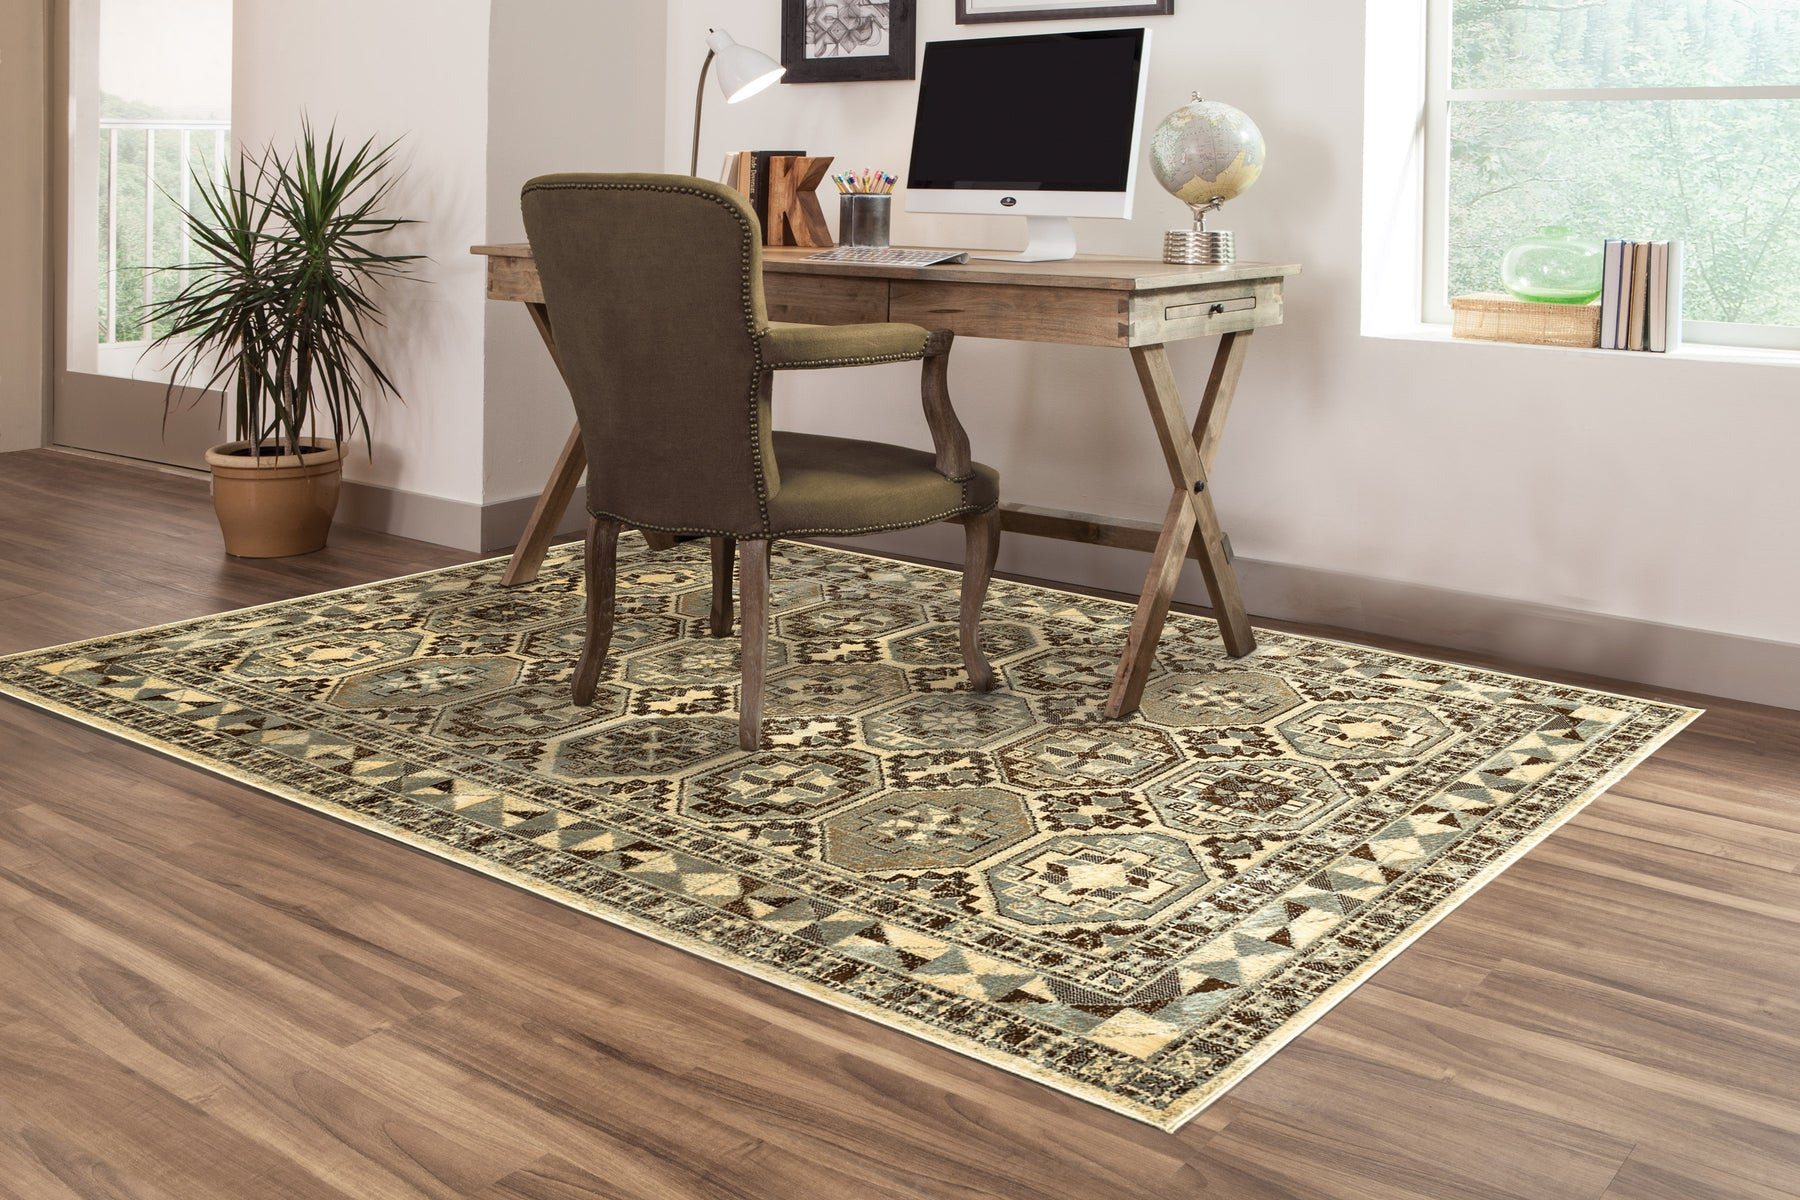 Upgrade Your Home Office With Rugs